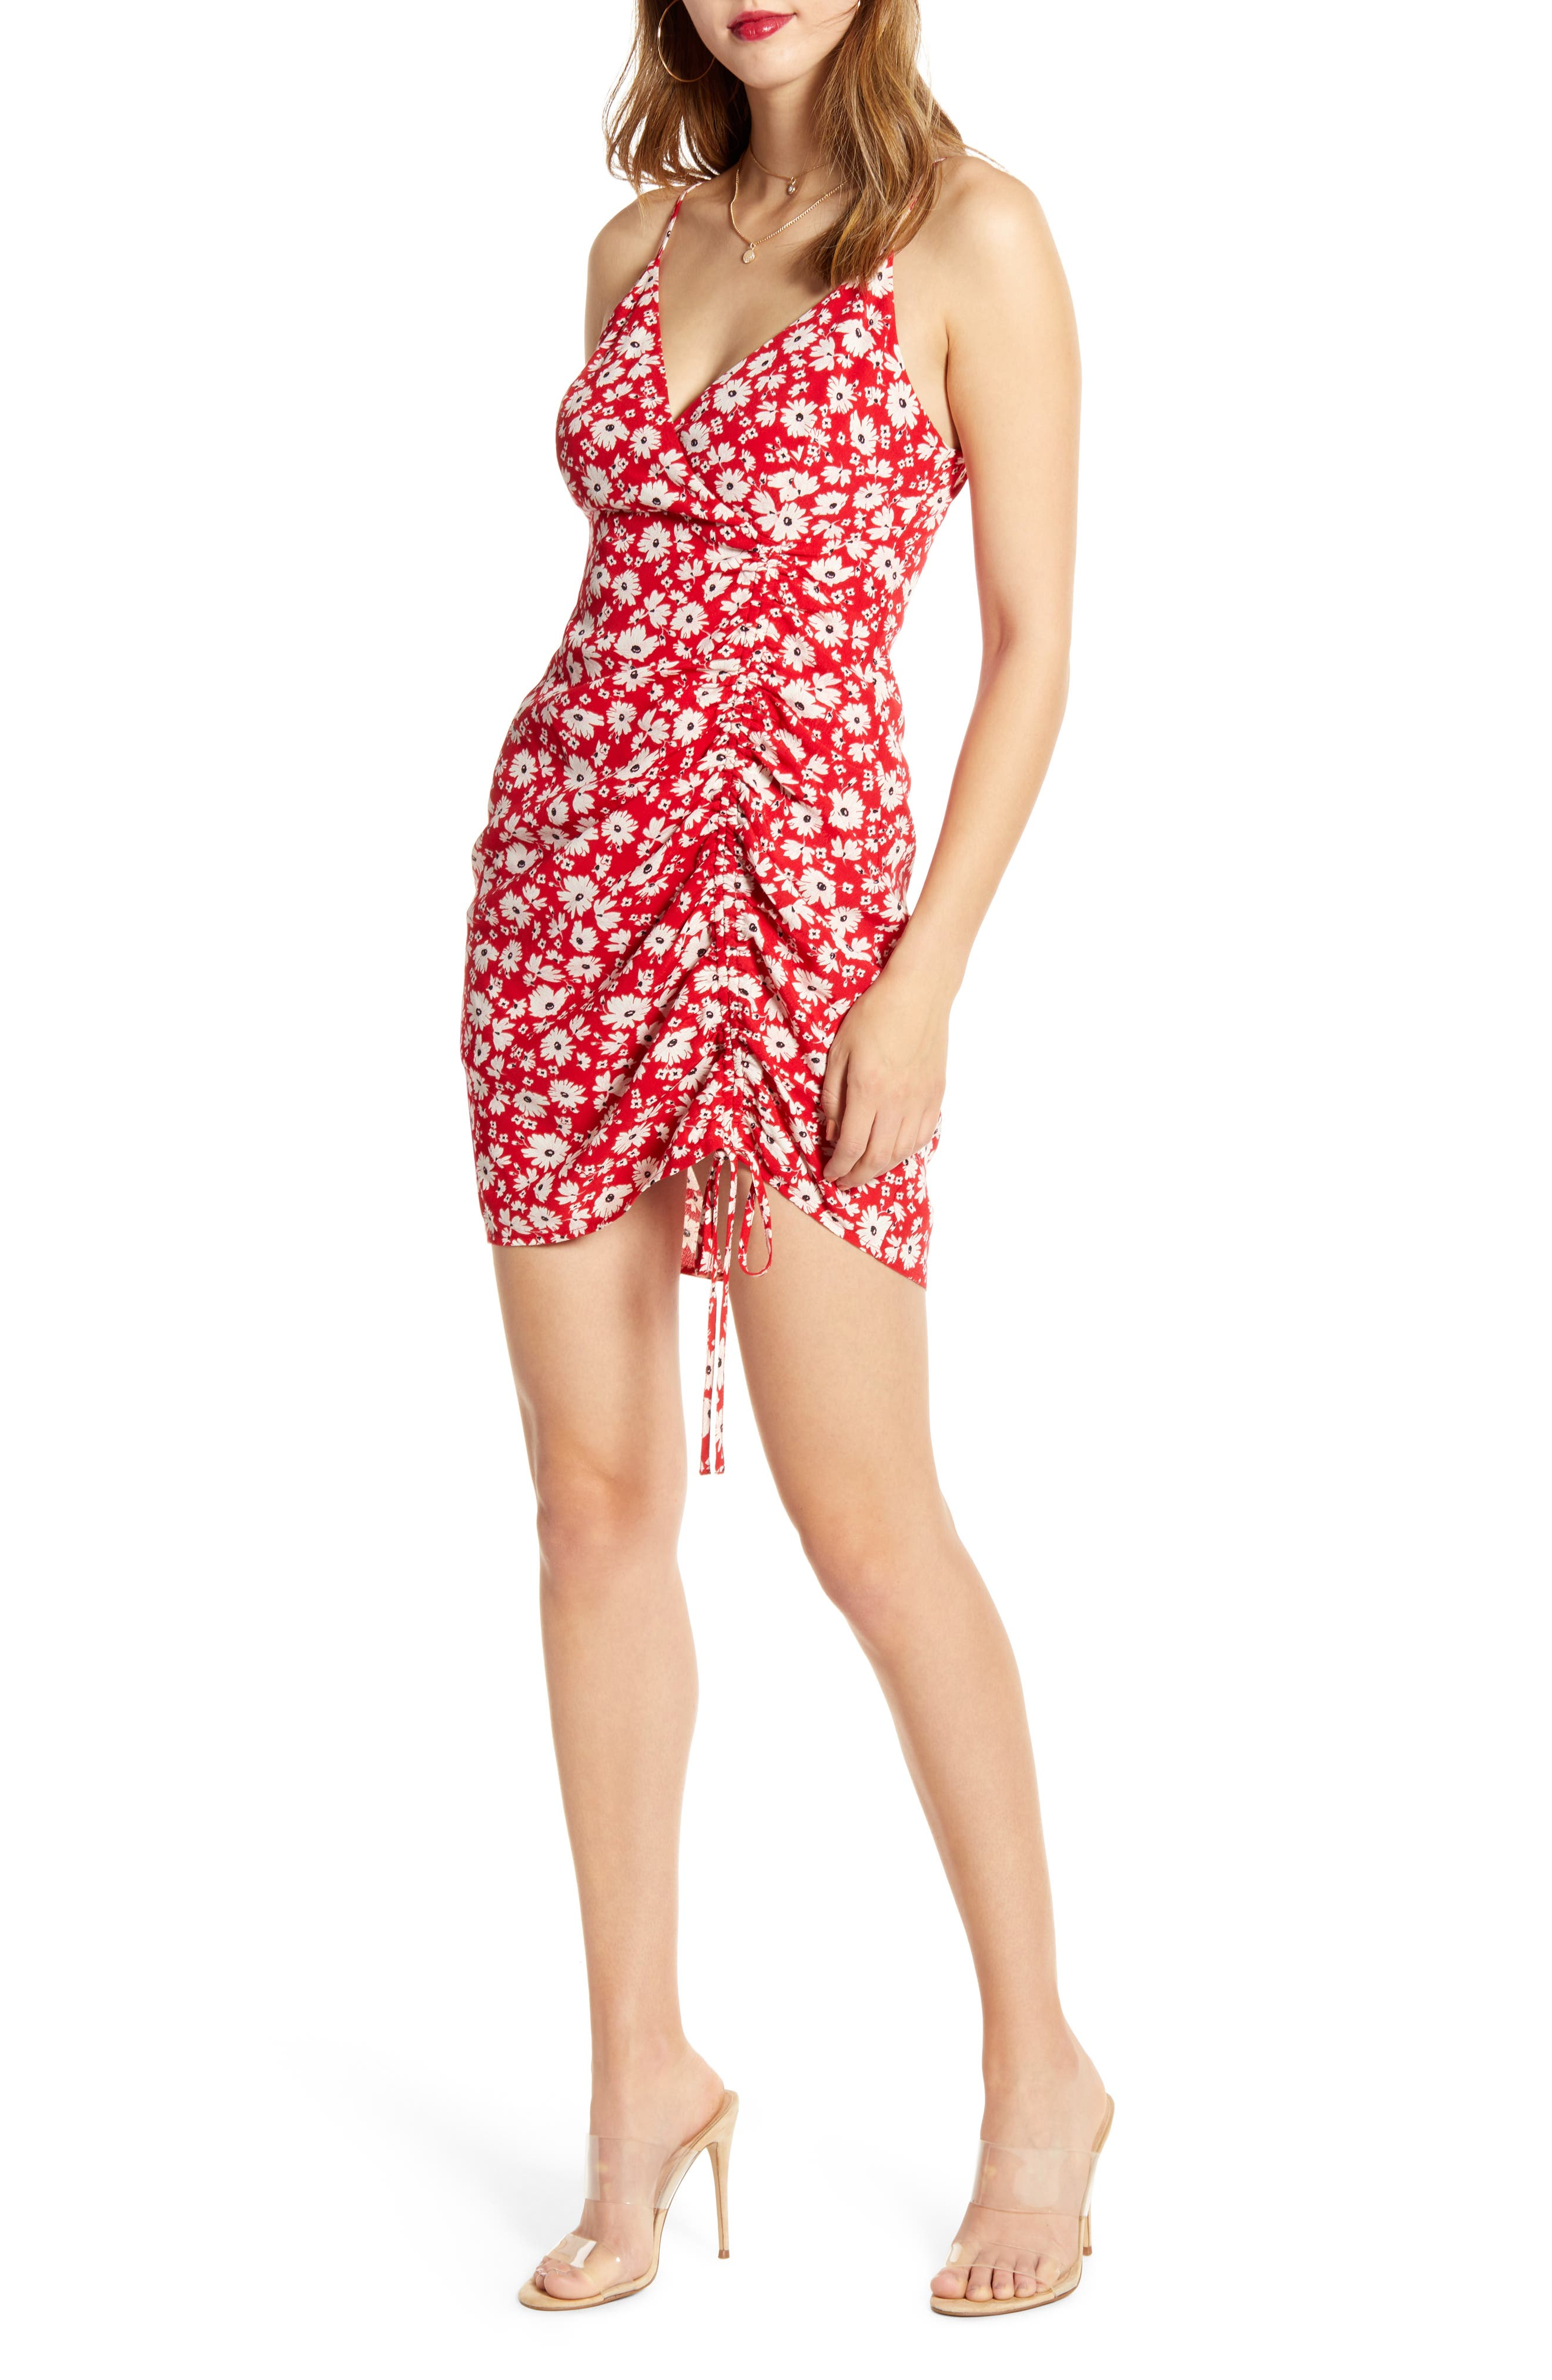 J.o.a. Sleeveless Front Ruched Minidress, Red